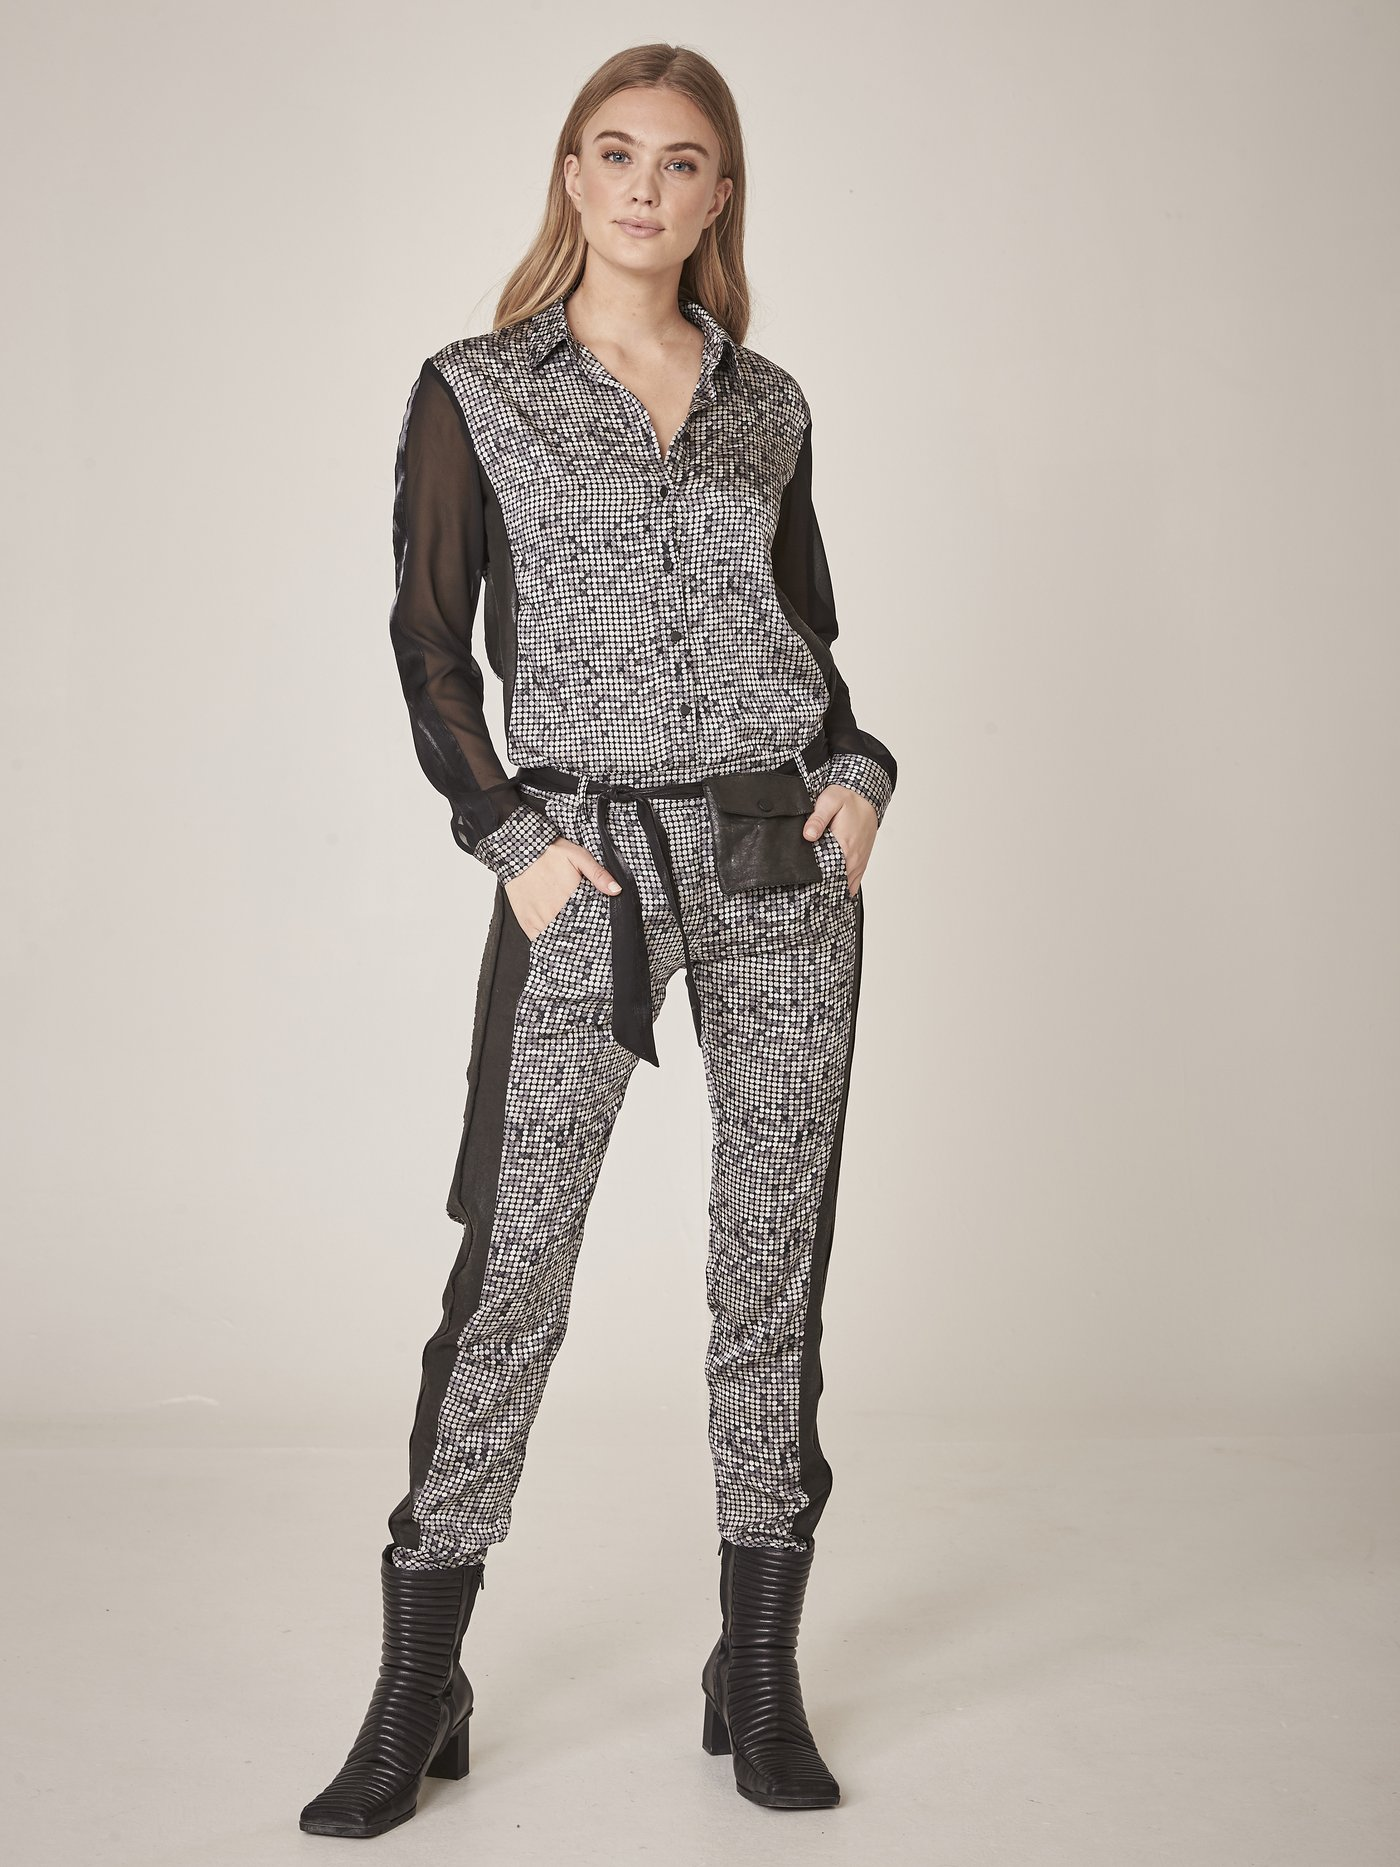 NÜ DENMARK ELINA FAITH TROUSERS RAVEN GREY MIX IMAGE BY ME